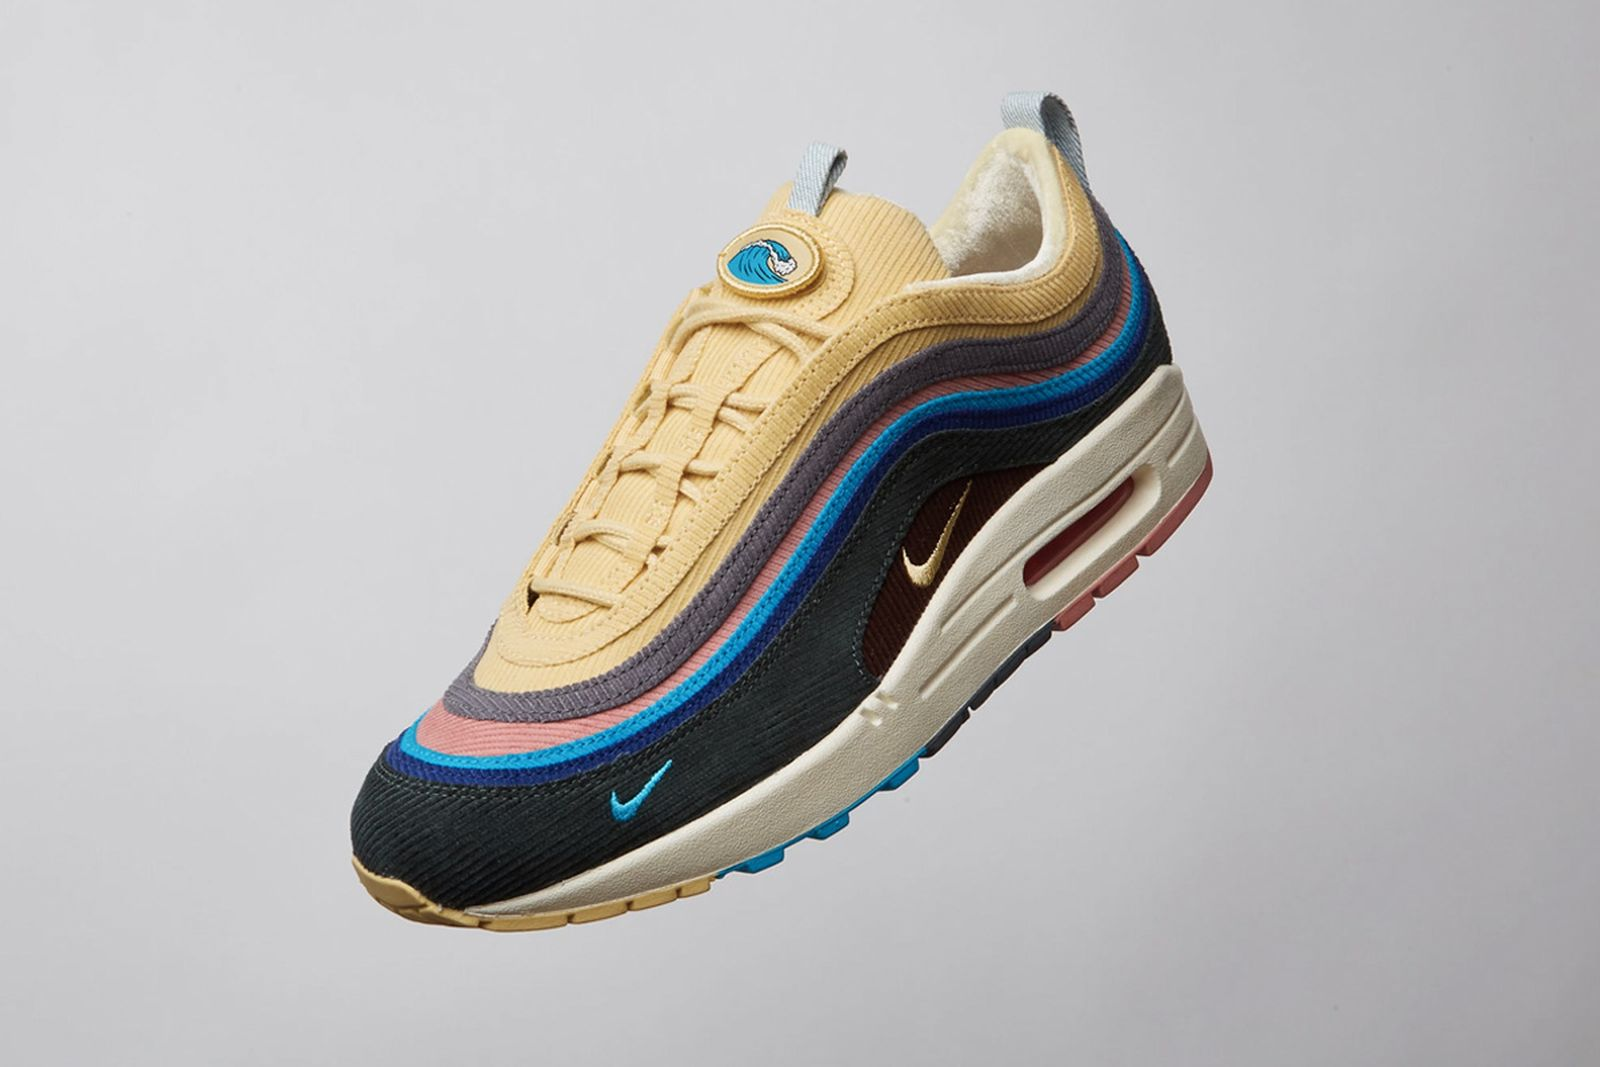 Sean Wotherspoon x Nike Air Max 1/97 Restock: Where to Buy